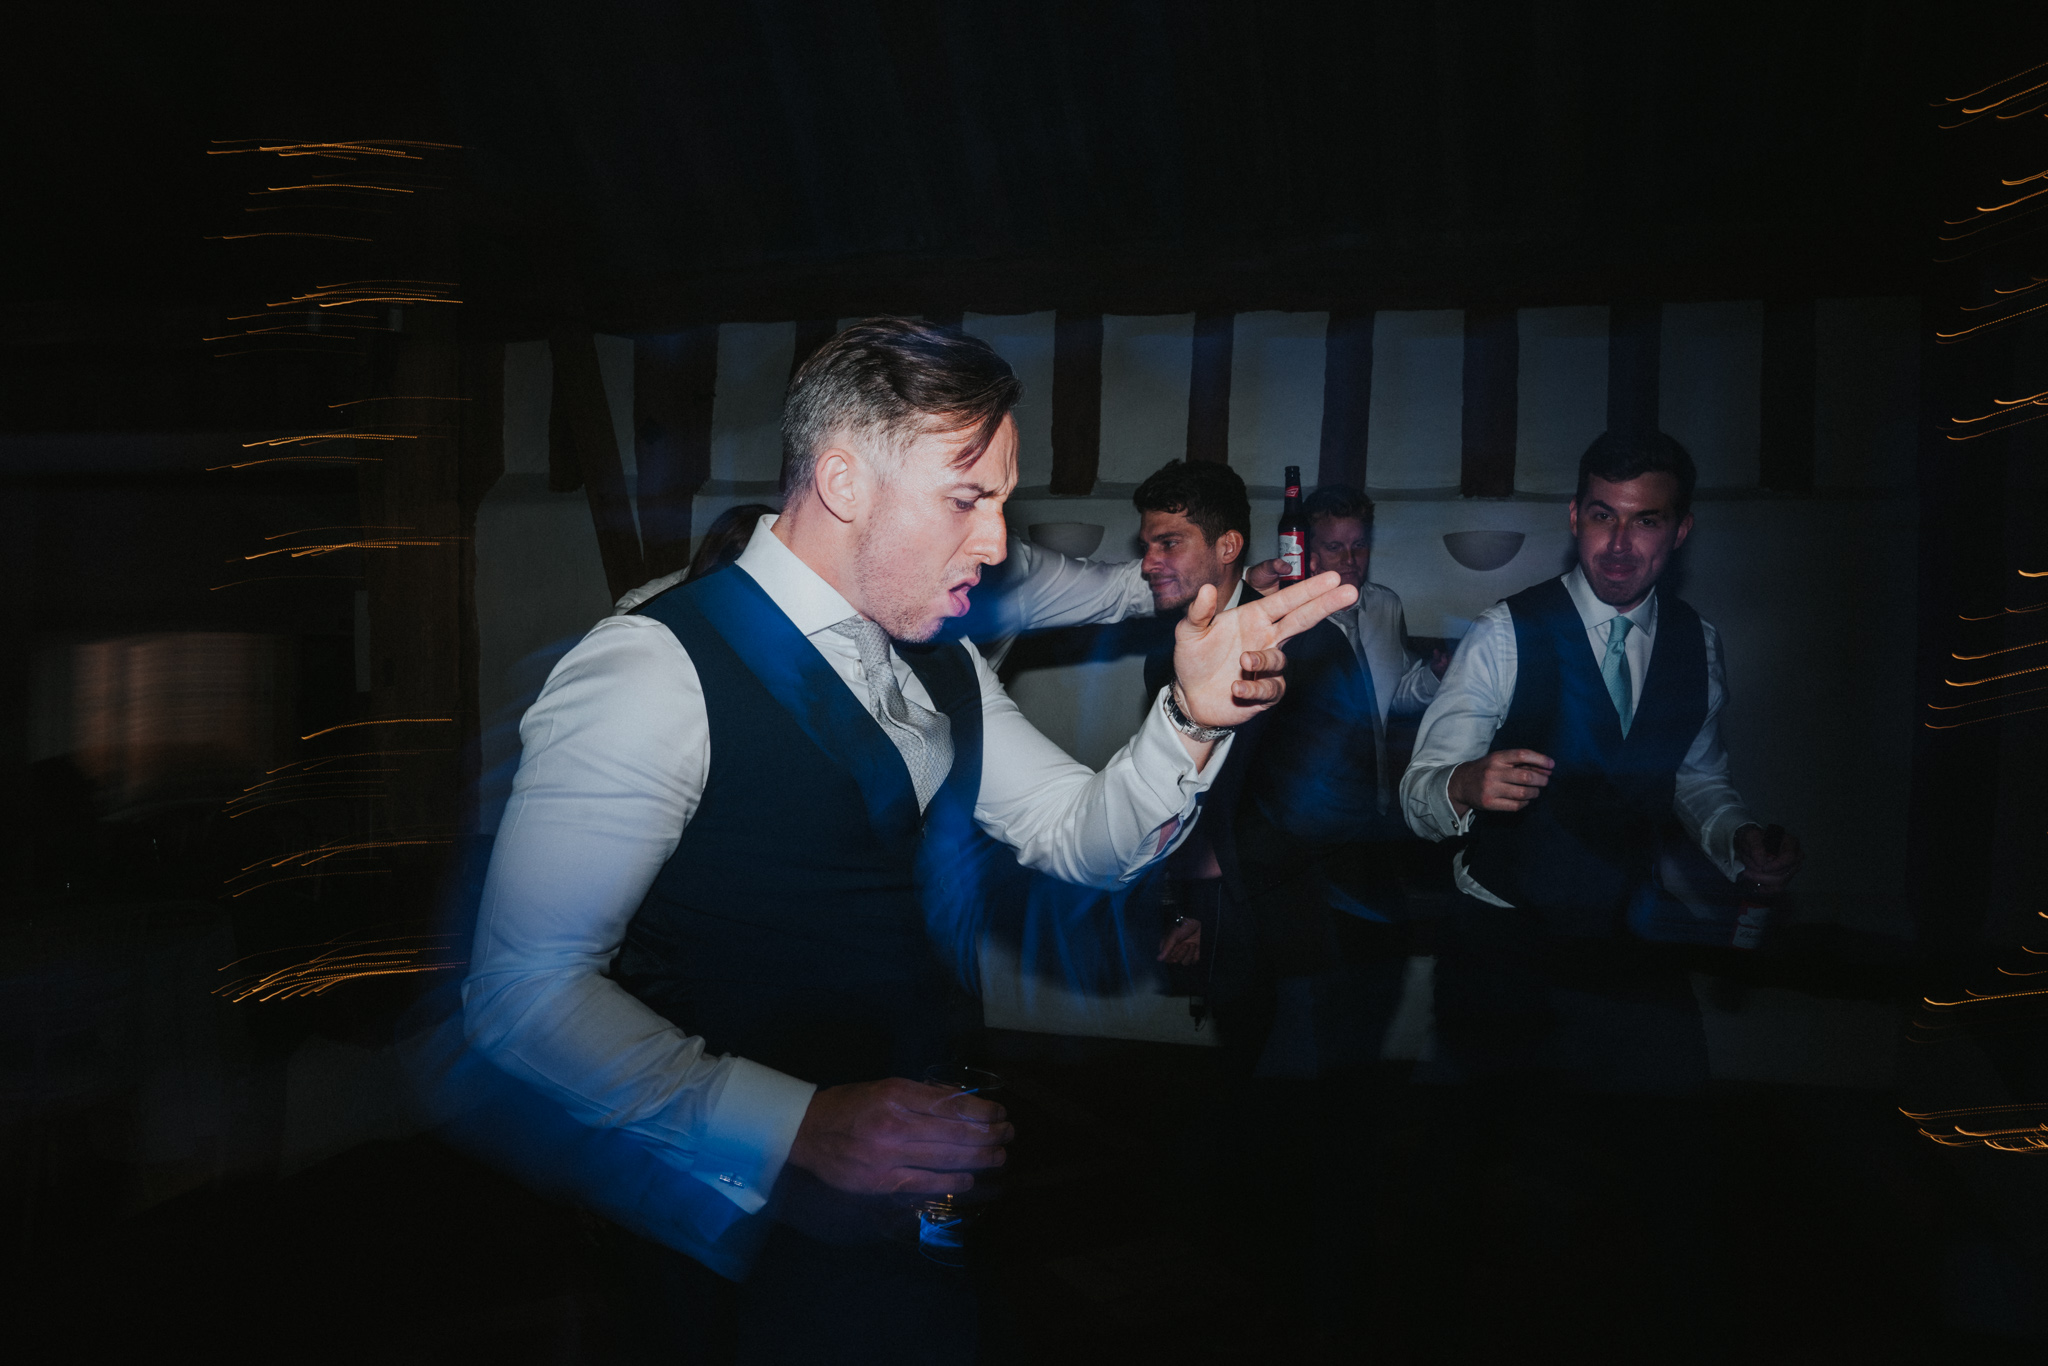 jane-patrick-smeetham-hall-barn-grace-elizabeth-colchester-essex-alternative-wedding-lifestyle-photographer-essex-suffolk-norfolk-devon (49 of 52).jpg